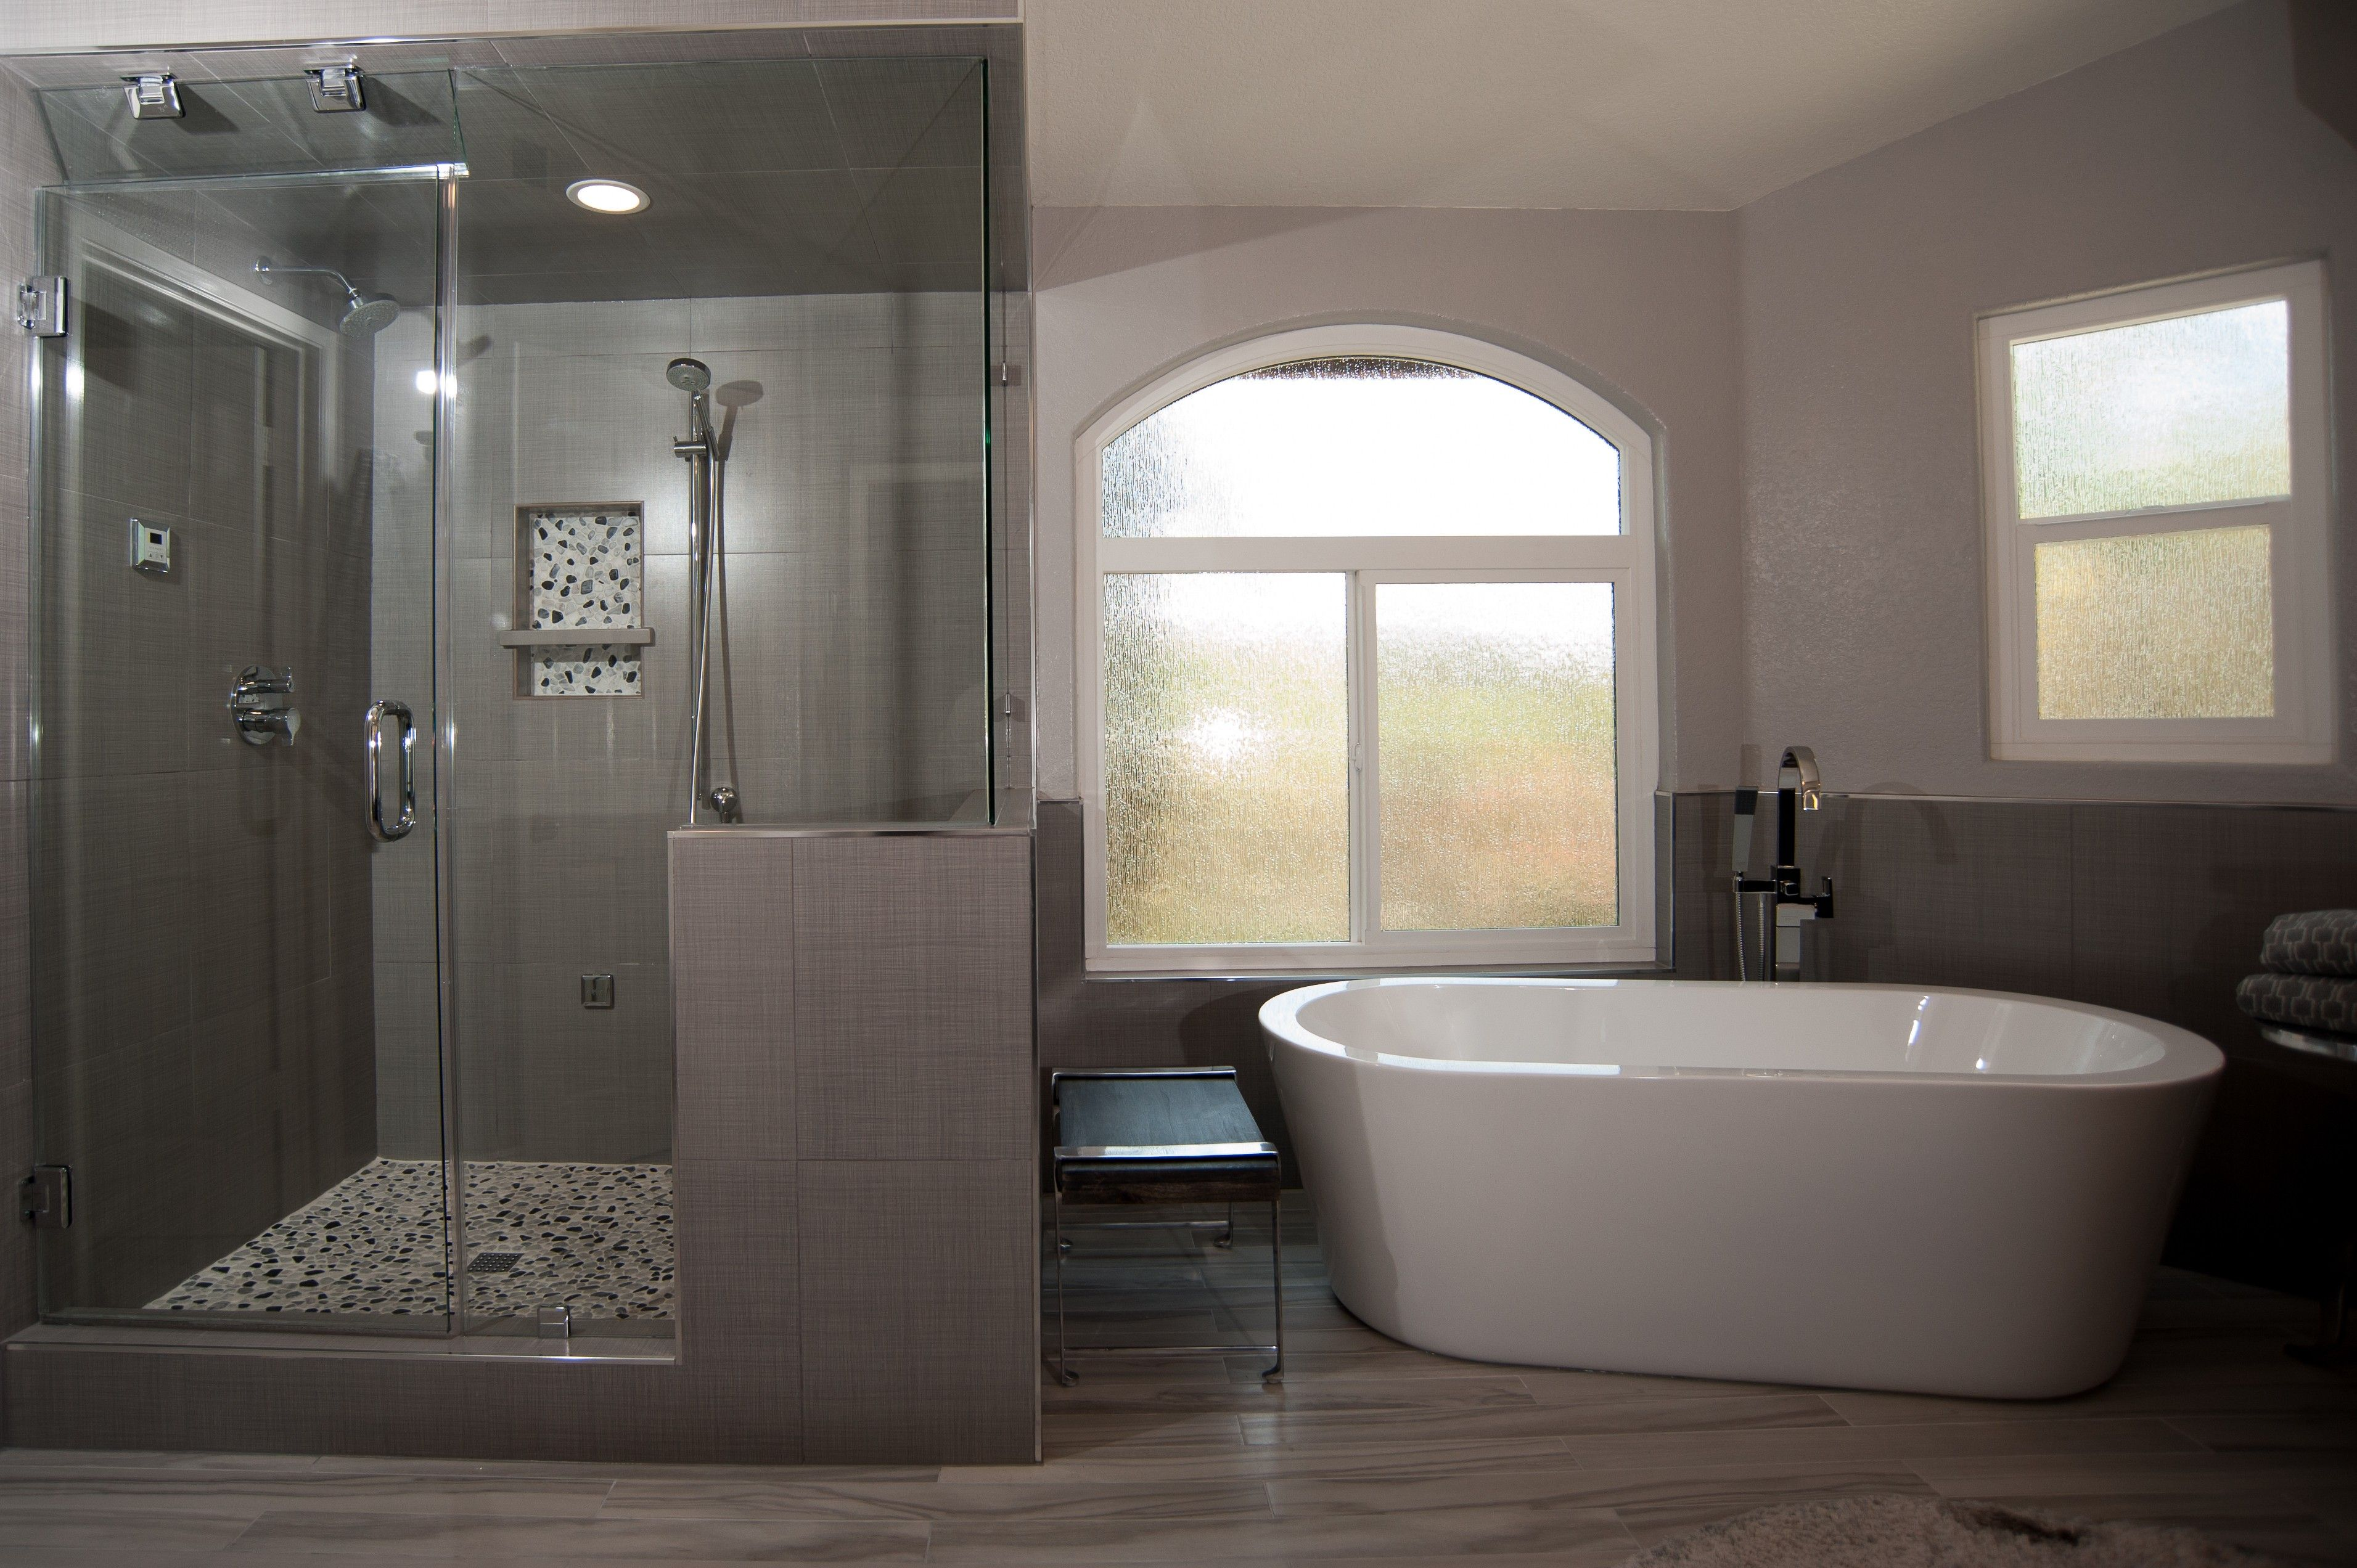 vanities consoles by pin harold black sink and wall mount lav san mirror diego contemporary transitional bathroom devon